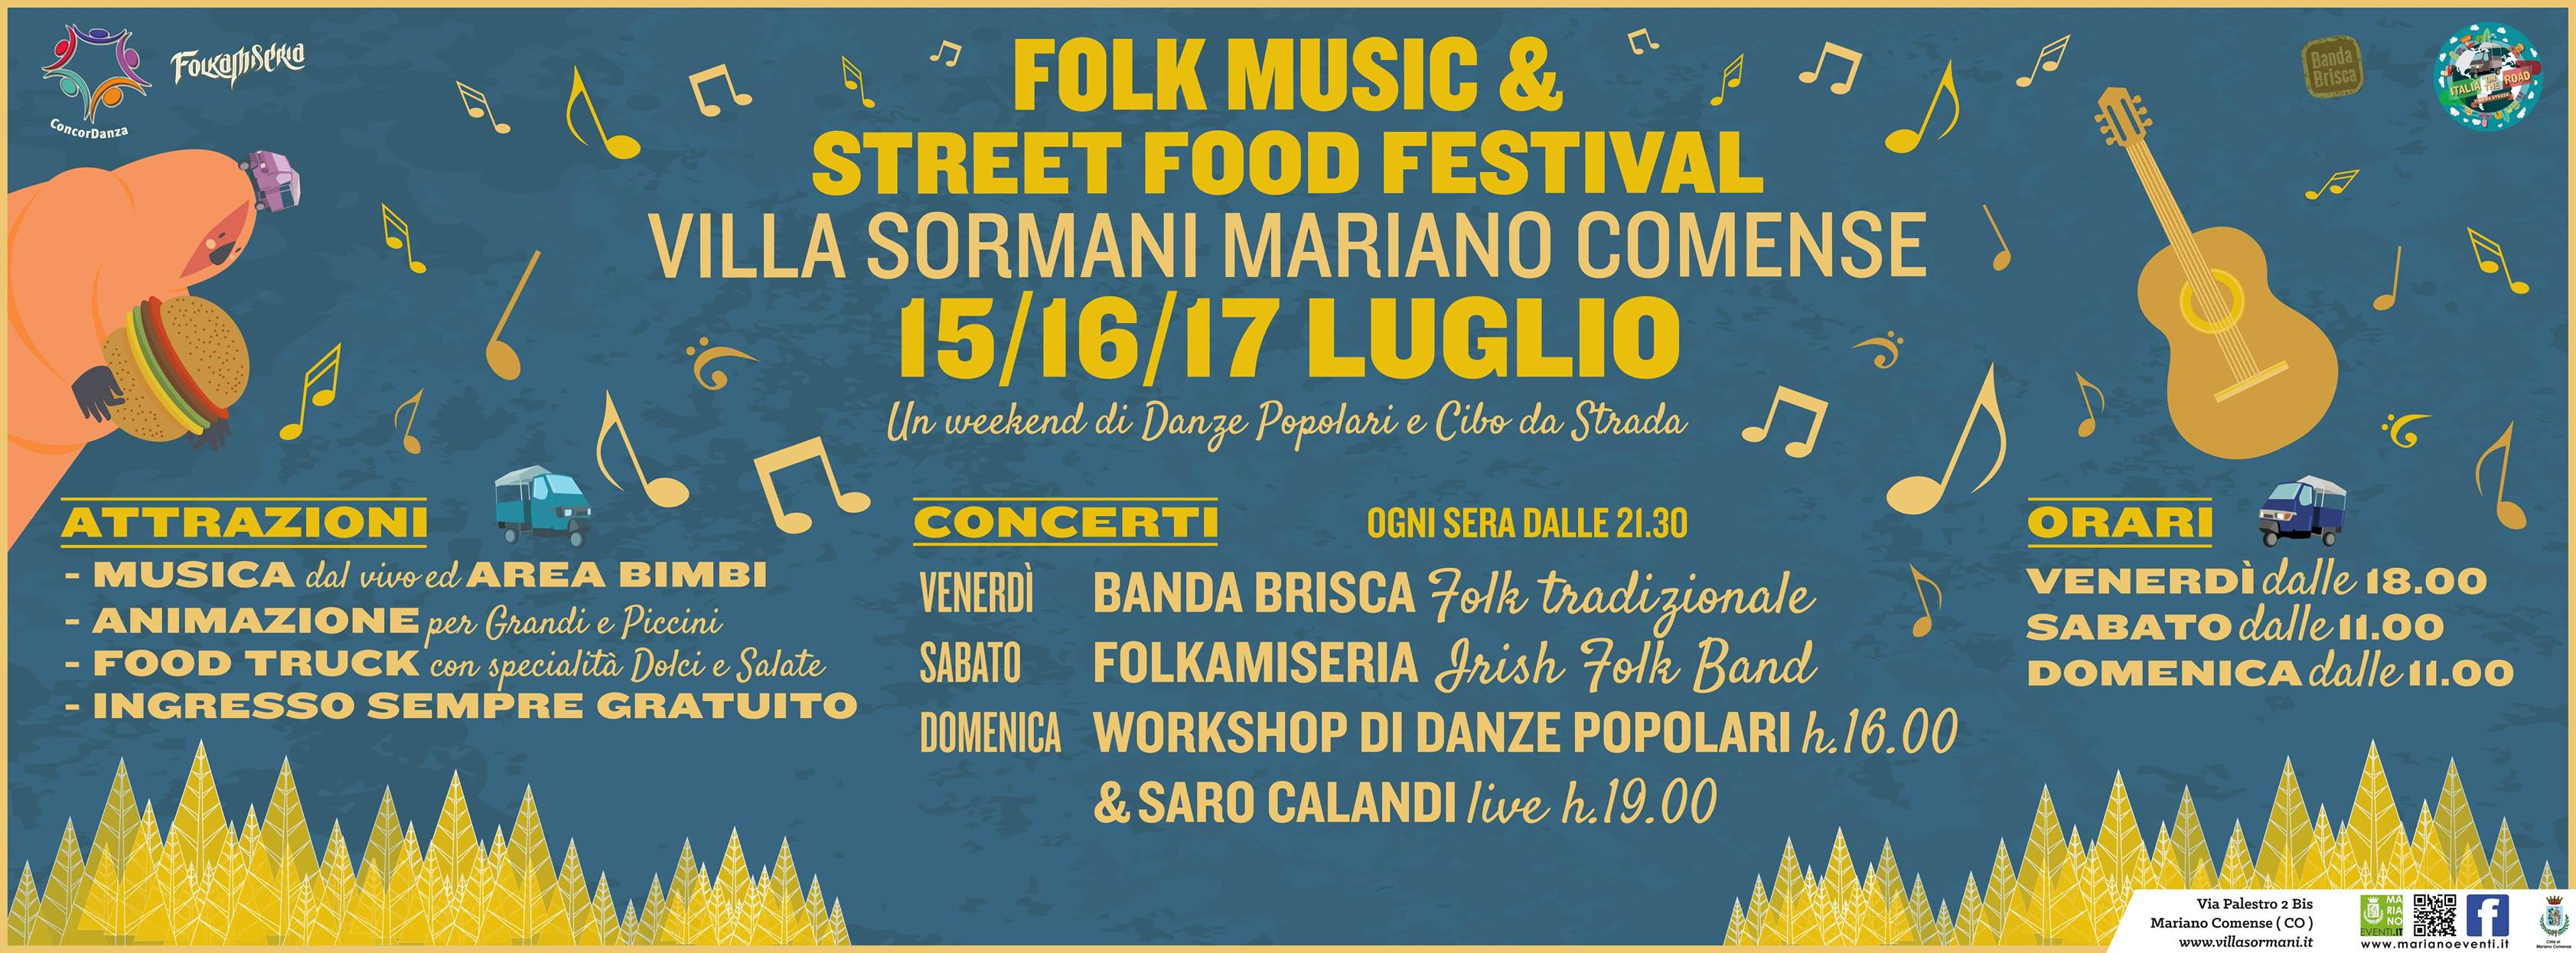 Folk Music & Street Food Festival